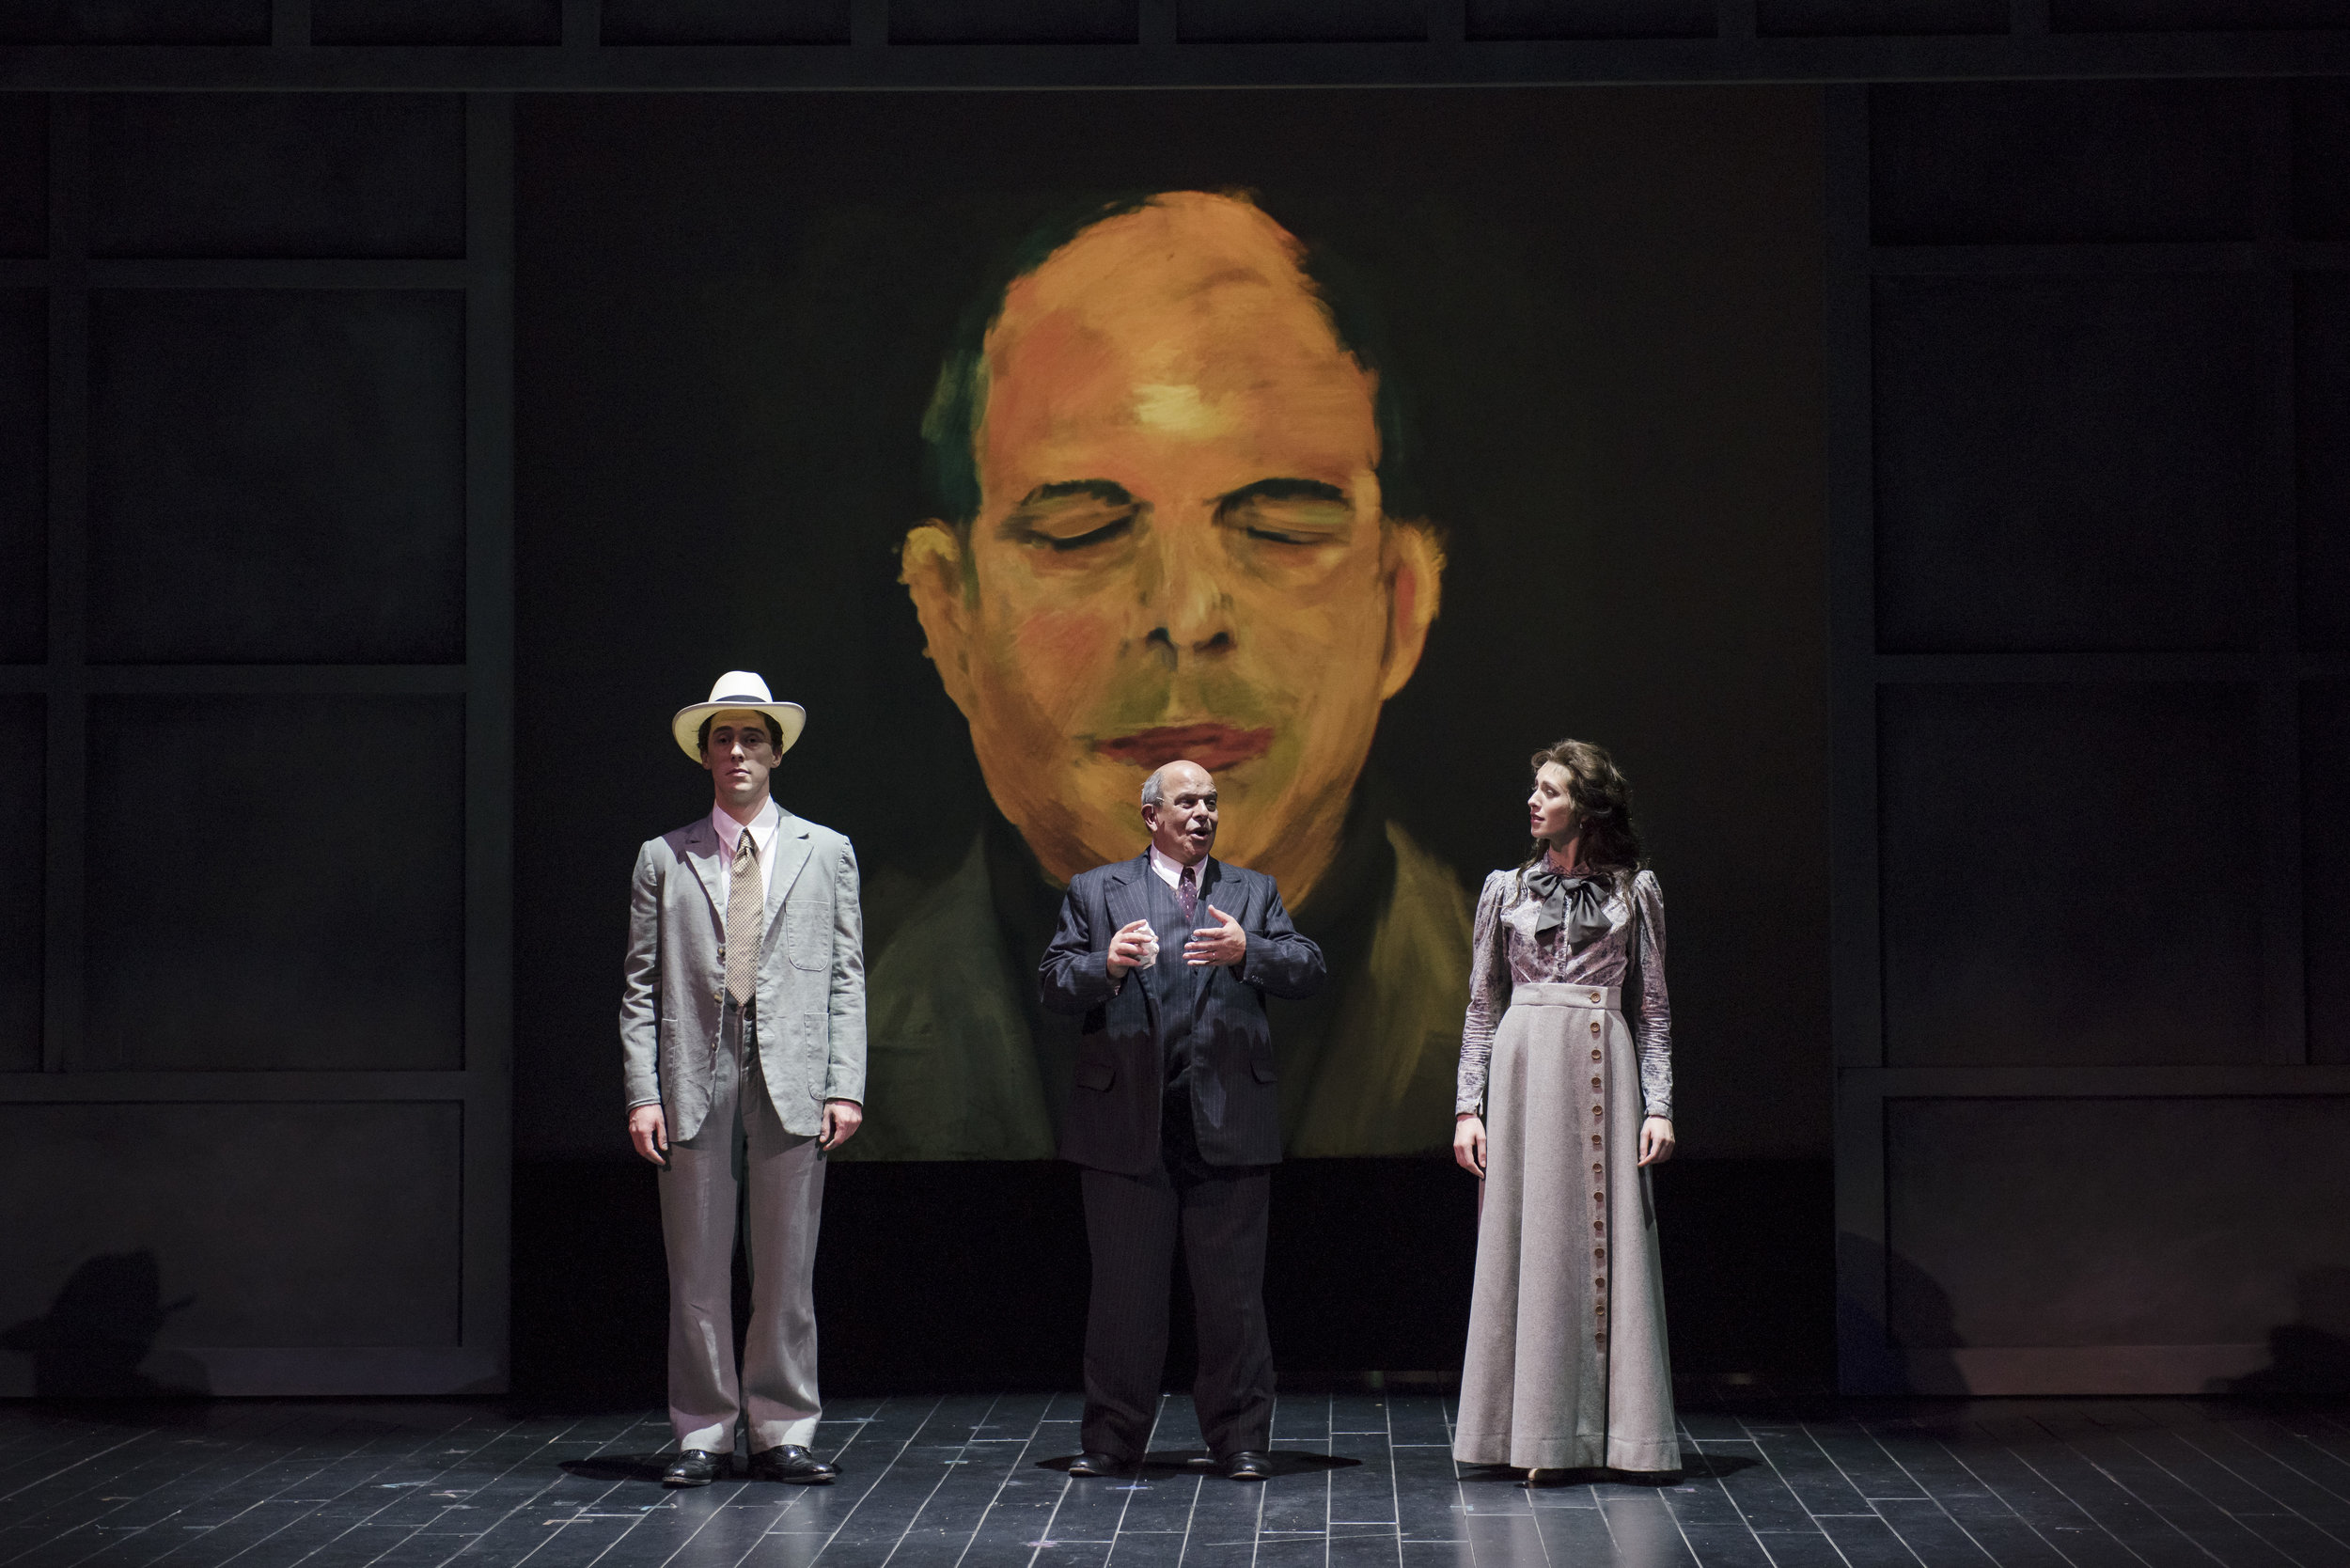 The cast of Schoenberg in Hollywood, with the composer looking on: tenor Jesse Darden (l), baritone Omar Ebrahim, and soprano Sara Womble. Liza Voll photography